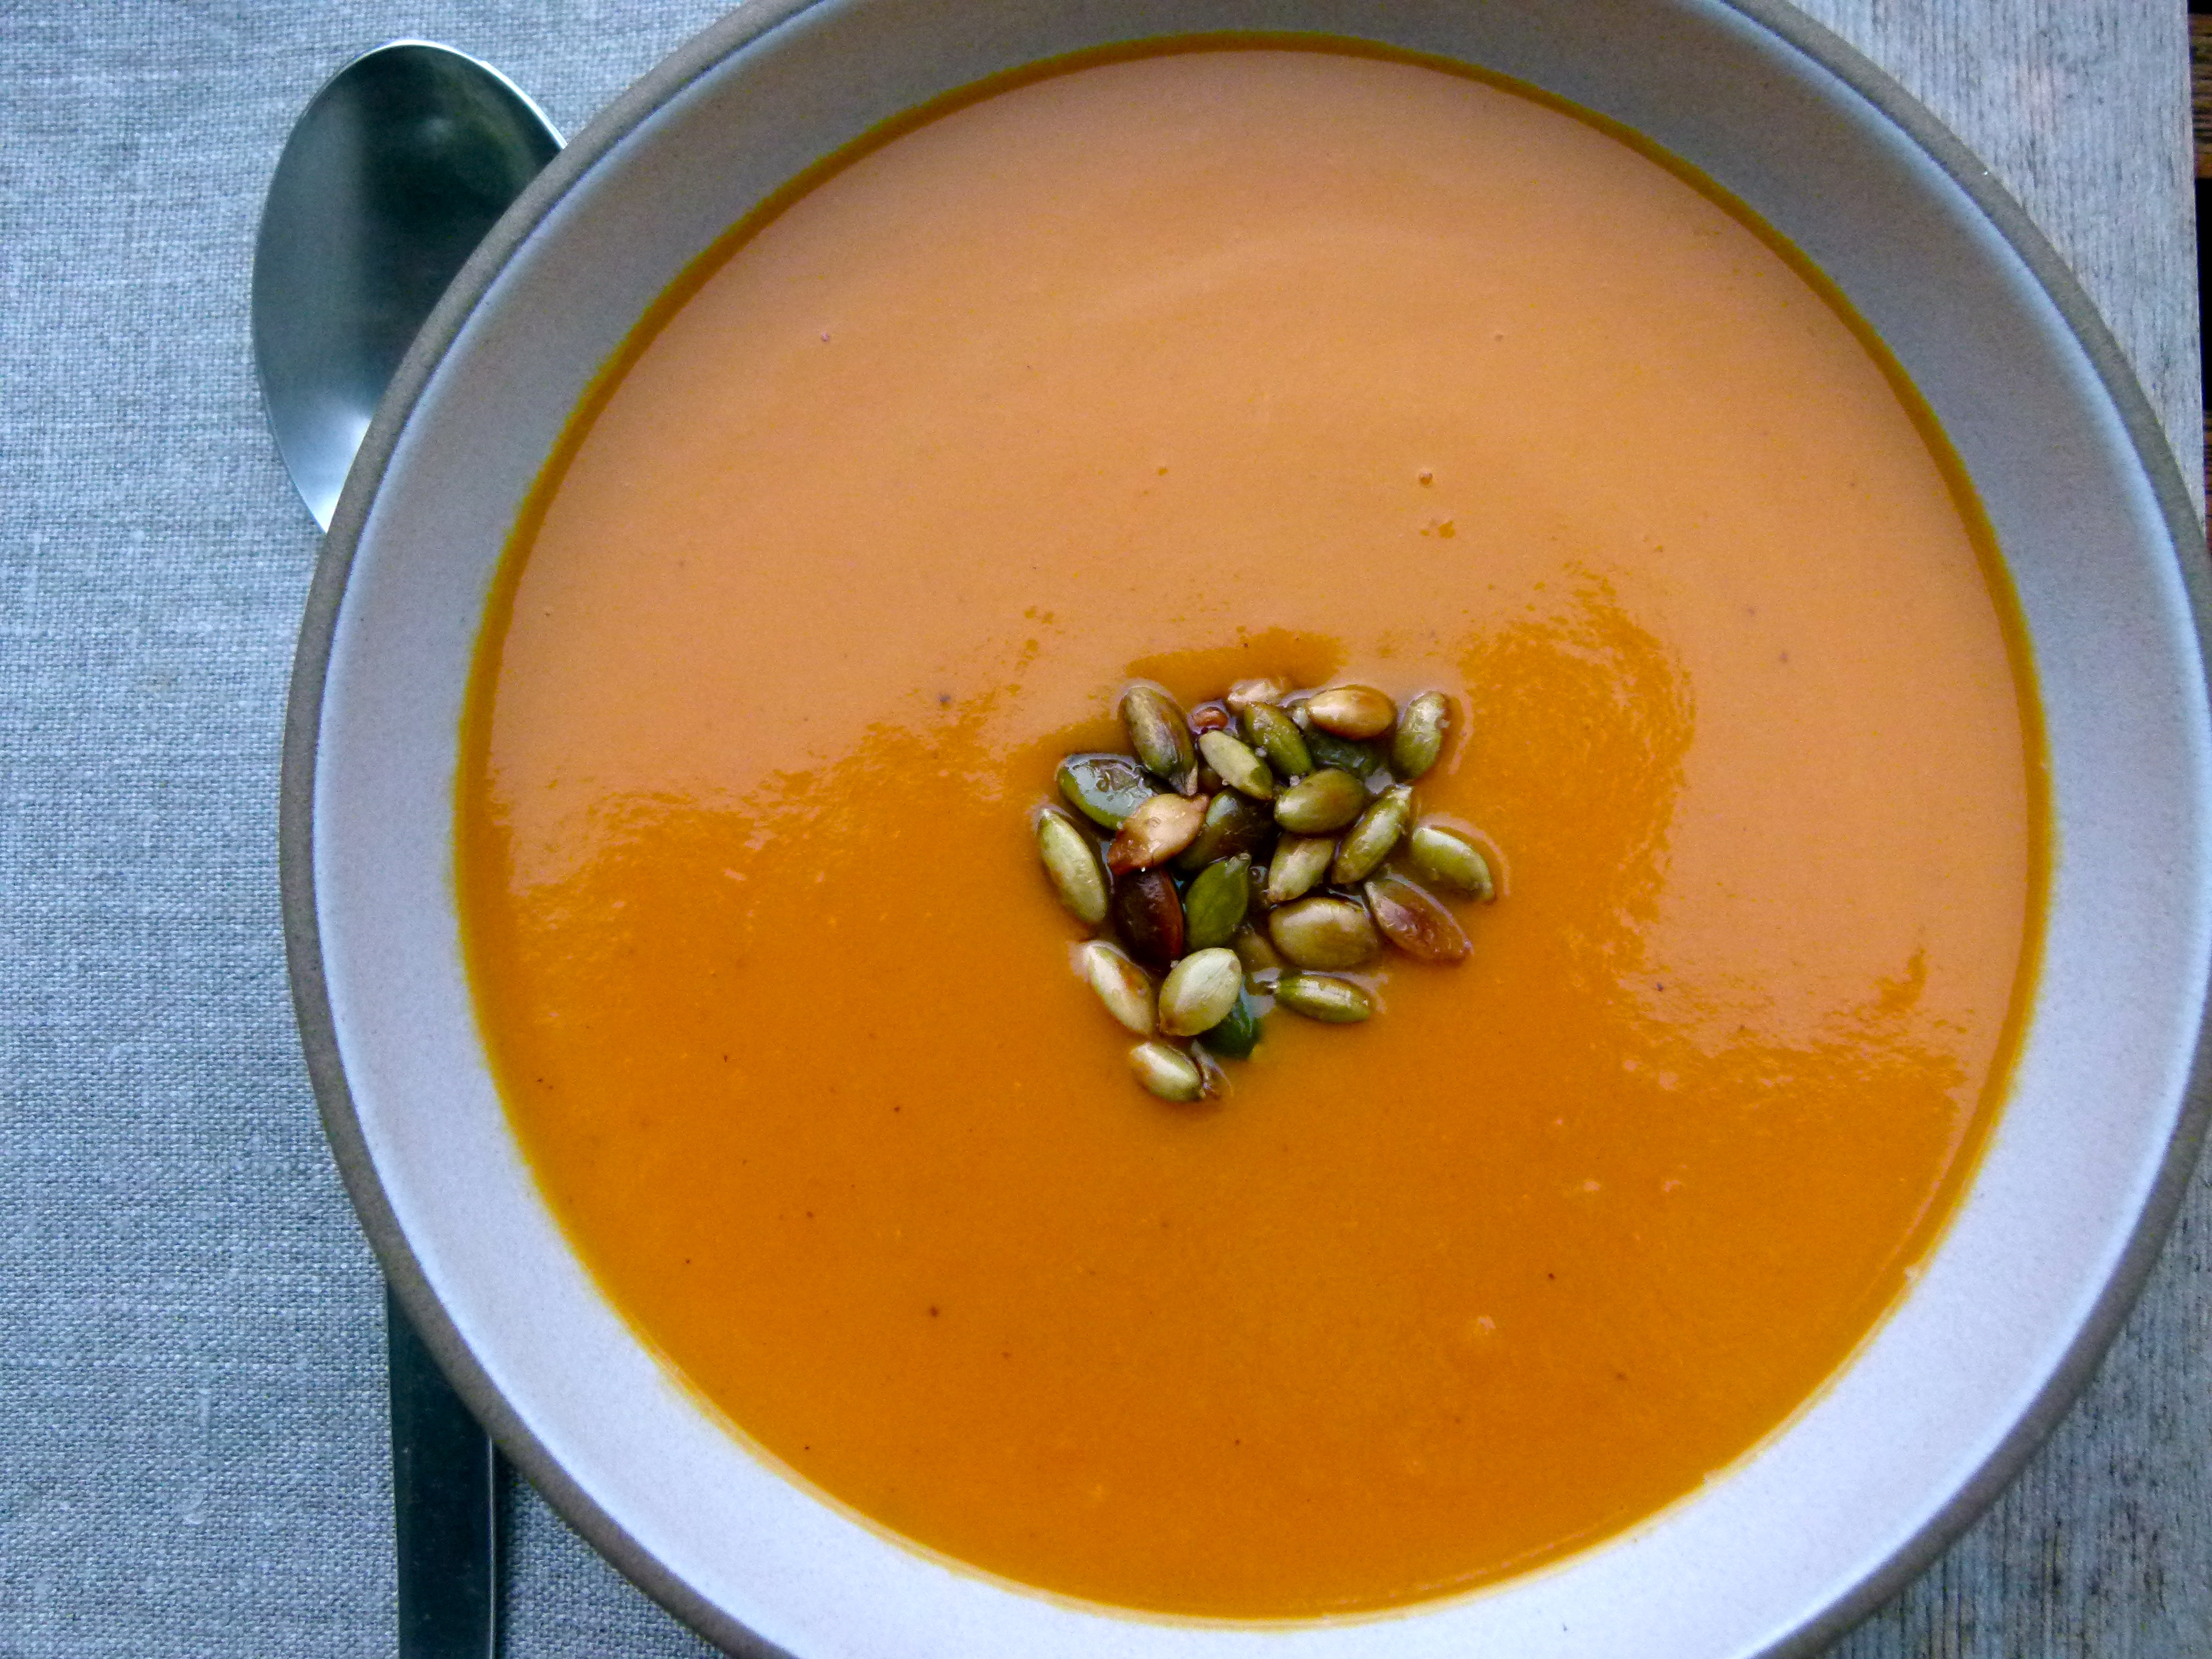 How to Thicken Soup with Flour